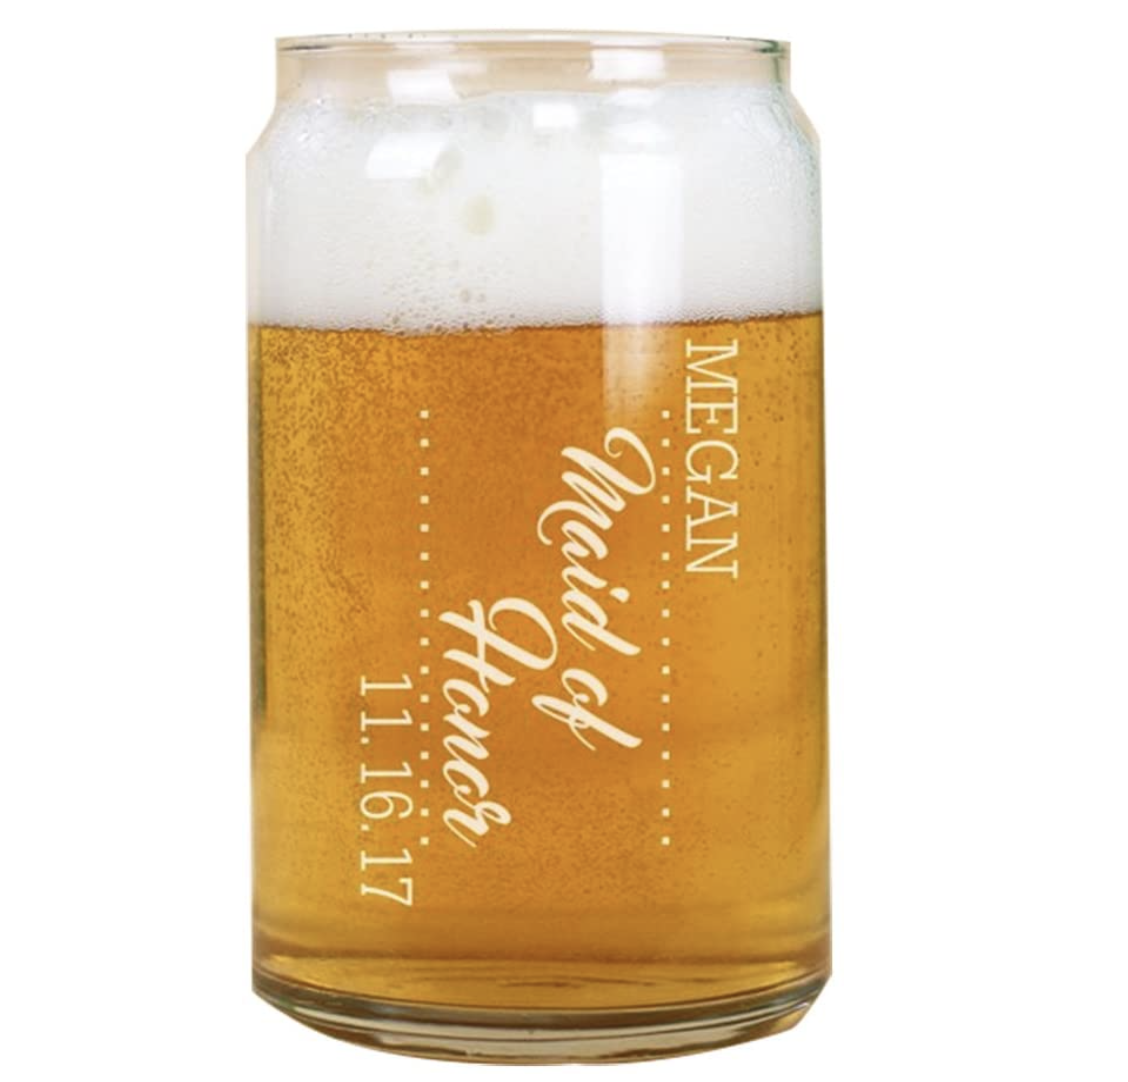 maid-of-honor-gifts-beer-glass